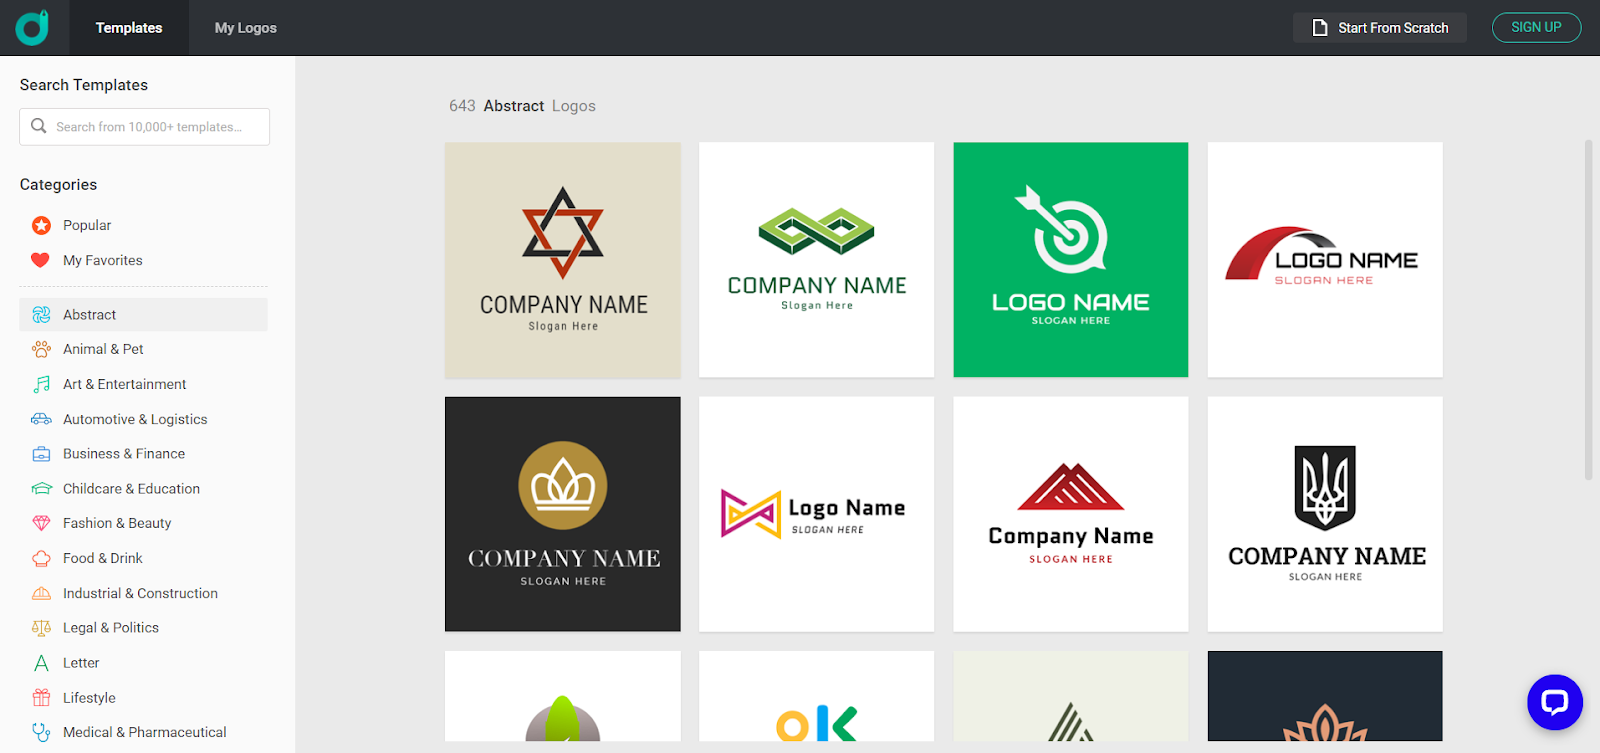 How To Design Logo In Minutes With DesignEvo